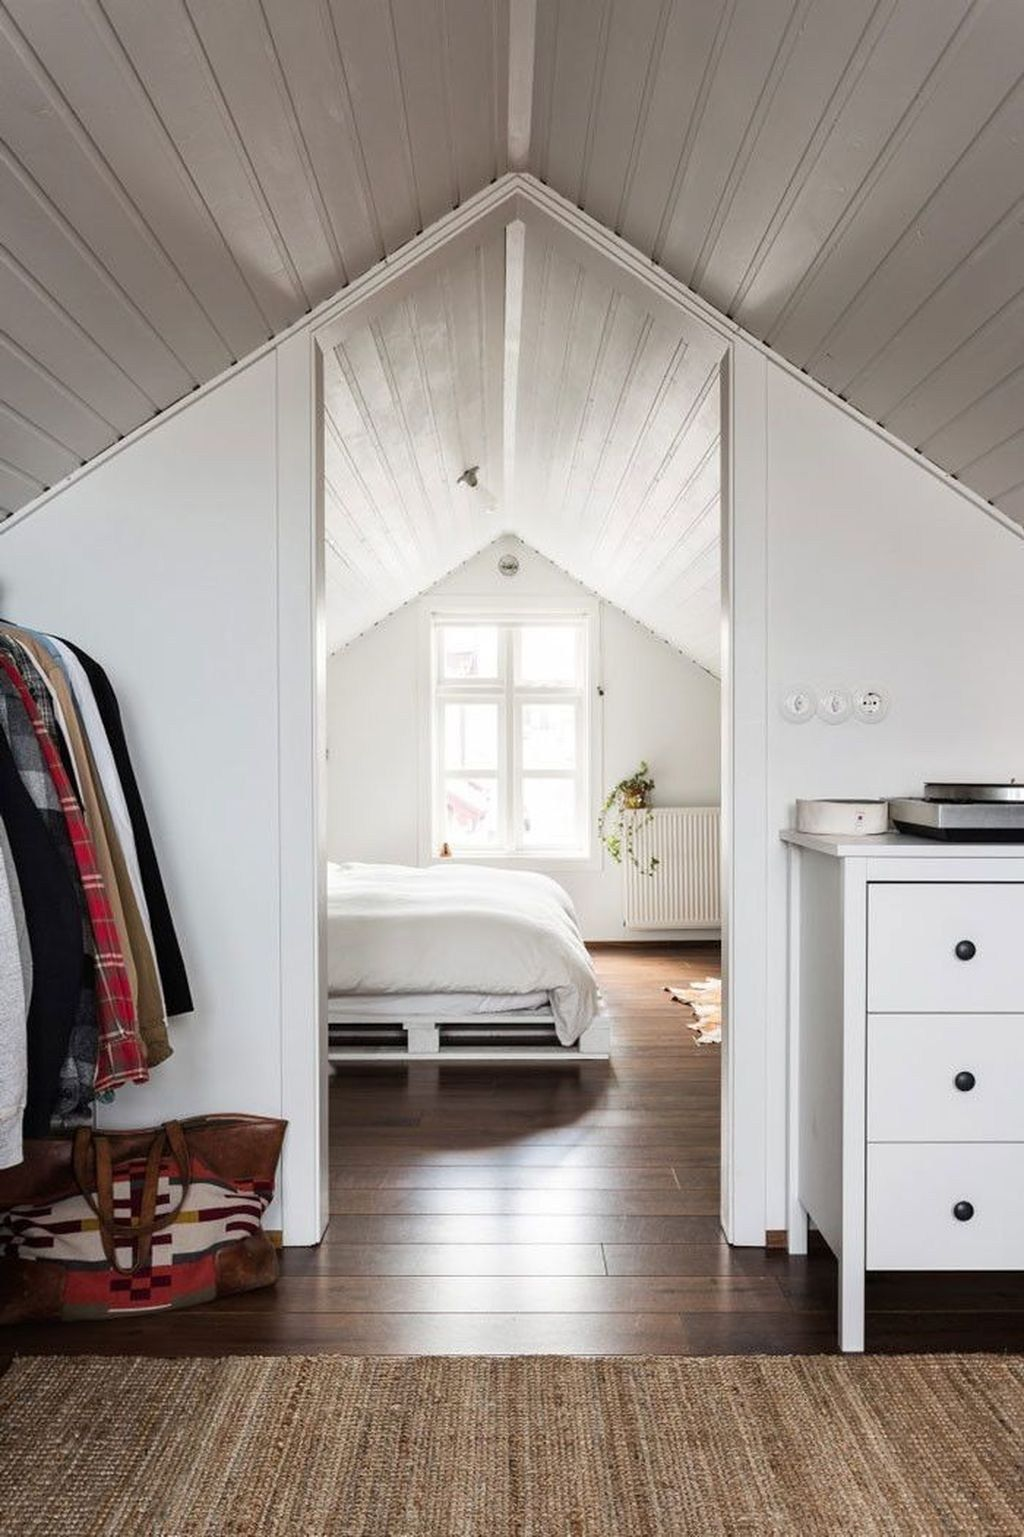 33 Awesome Attic Room Ideas Attic Bedroom Designs Pictures Met